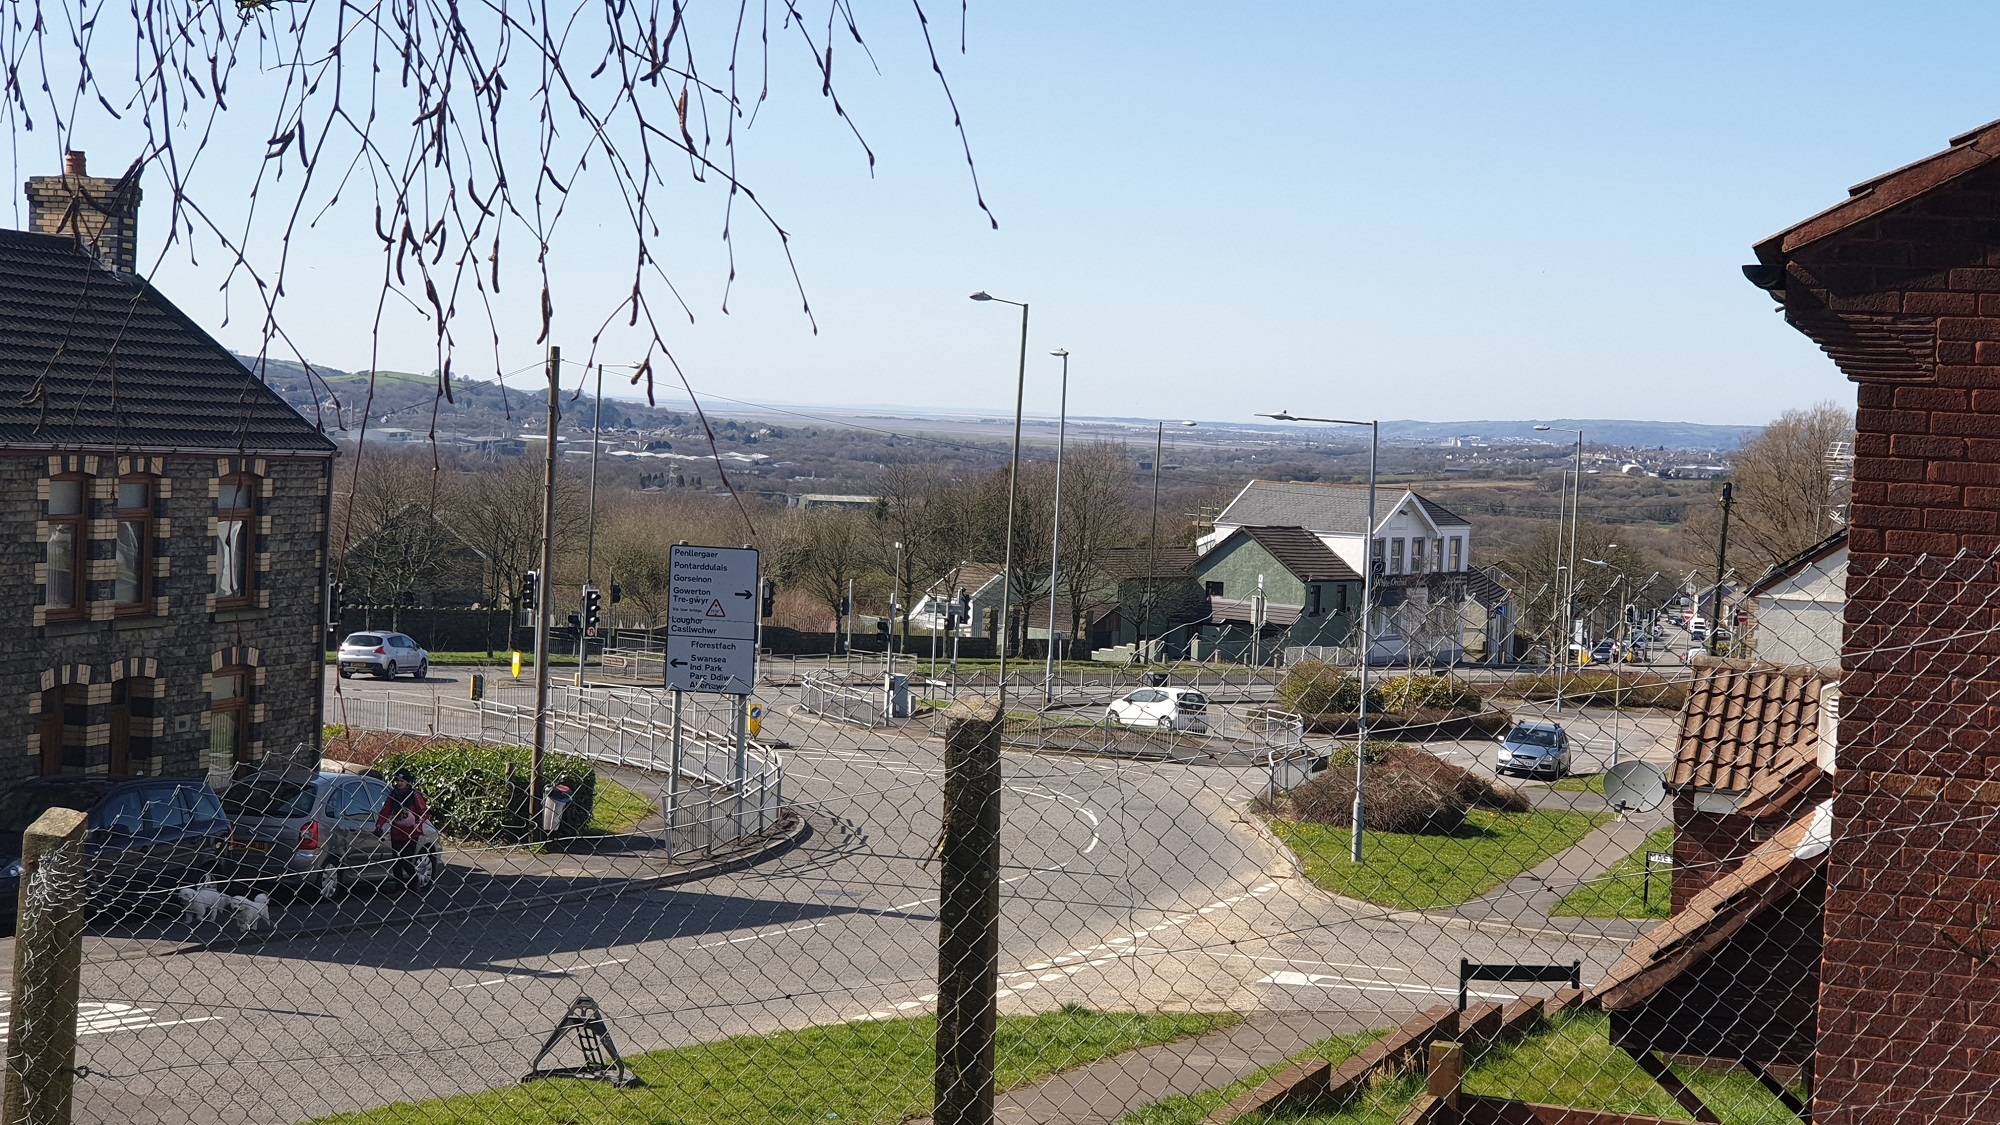 The town stretches into the distance beyond the fence the photographer stands behind